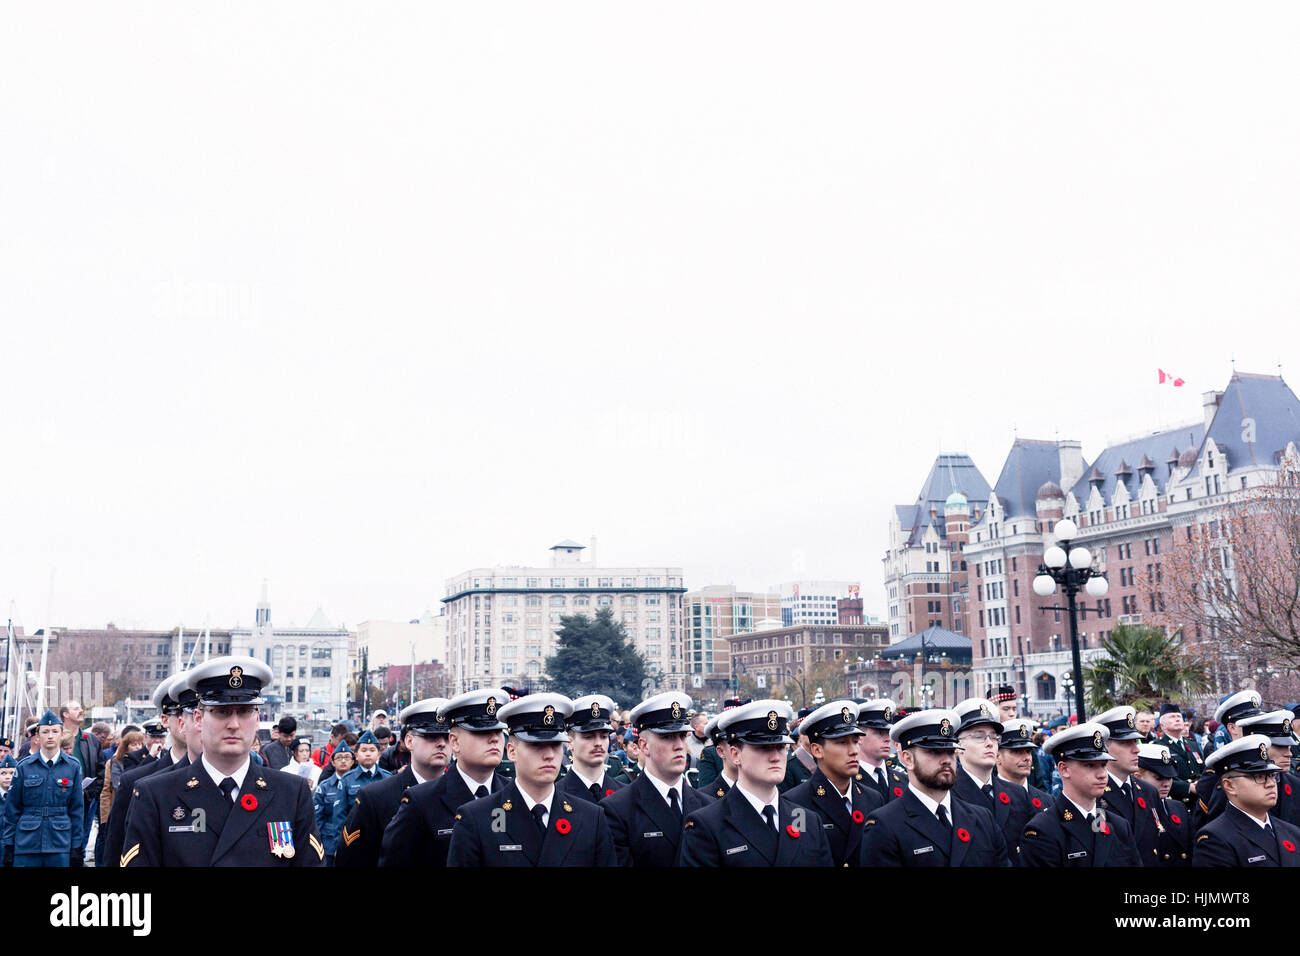 Members of the Canadian Navy at November 11 Remembrance Day event.  Victoria, BC. Canada - Stock Image